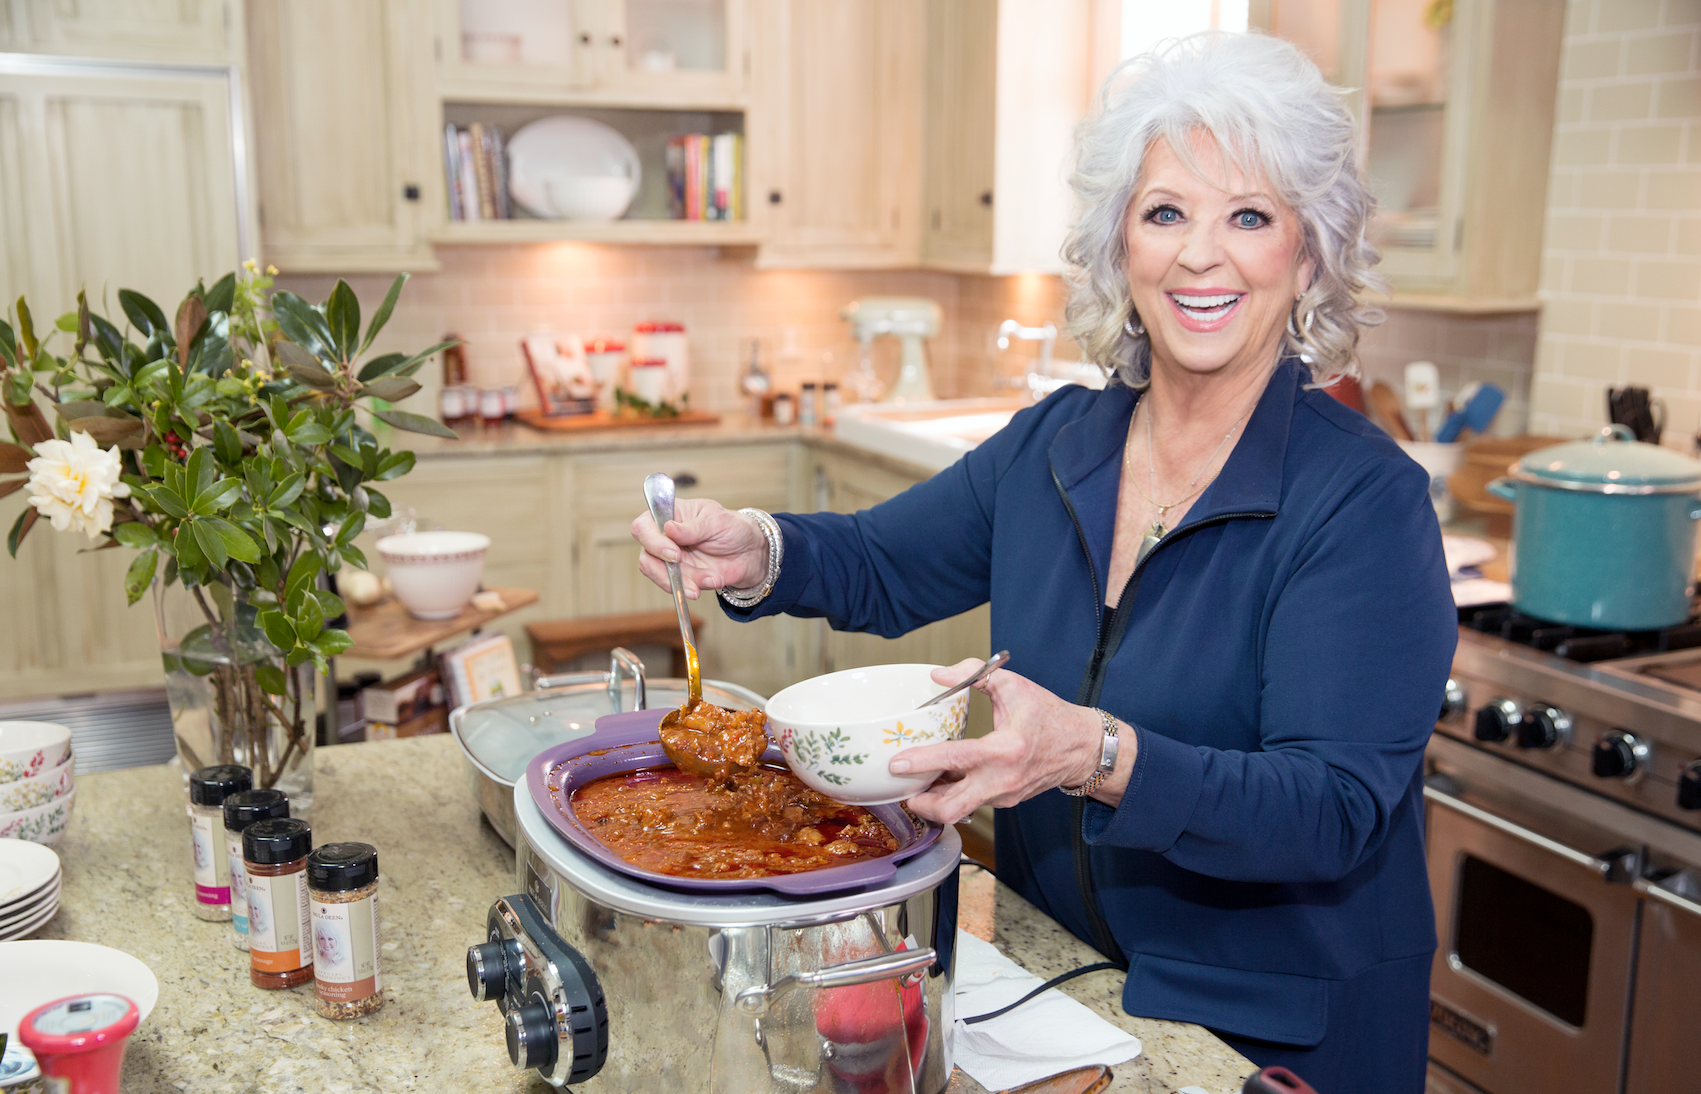 paula deen kitchen slip resistant shoes s new show is unlike anything you ve seen before delish com behind the scenes of